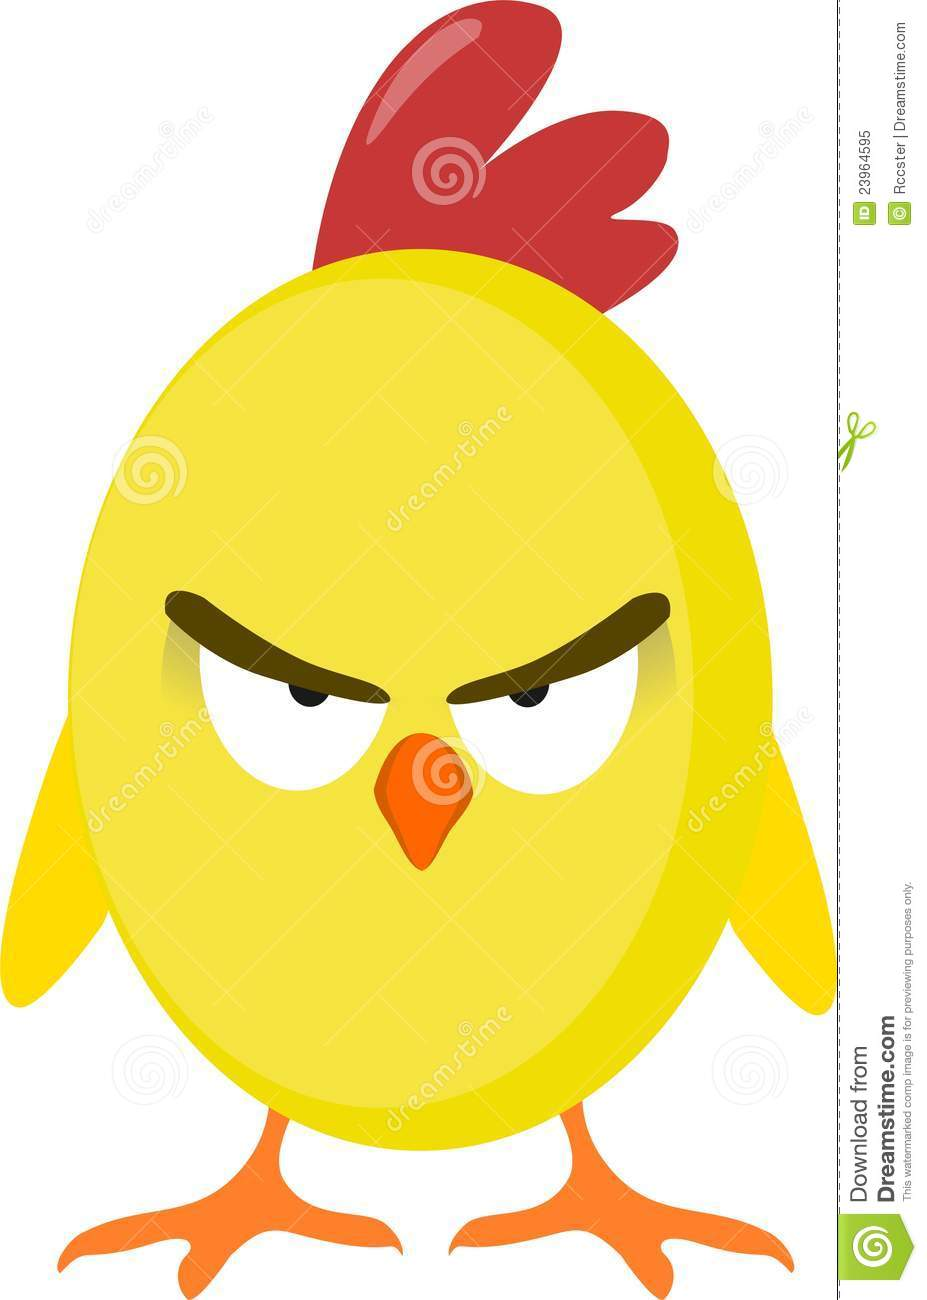 Angry Chicken Royalty Free Stock Photo - Image: 23964595